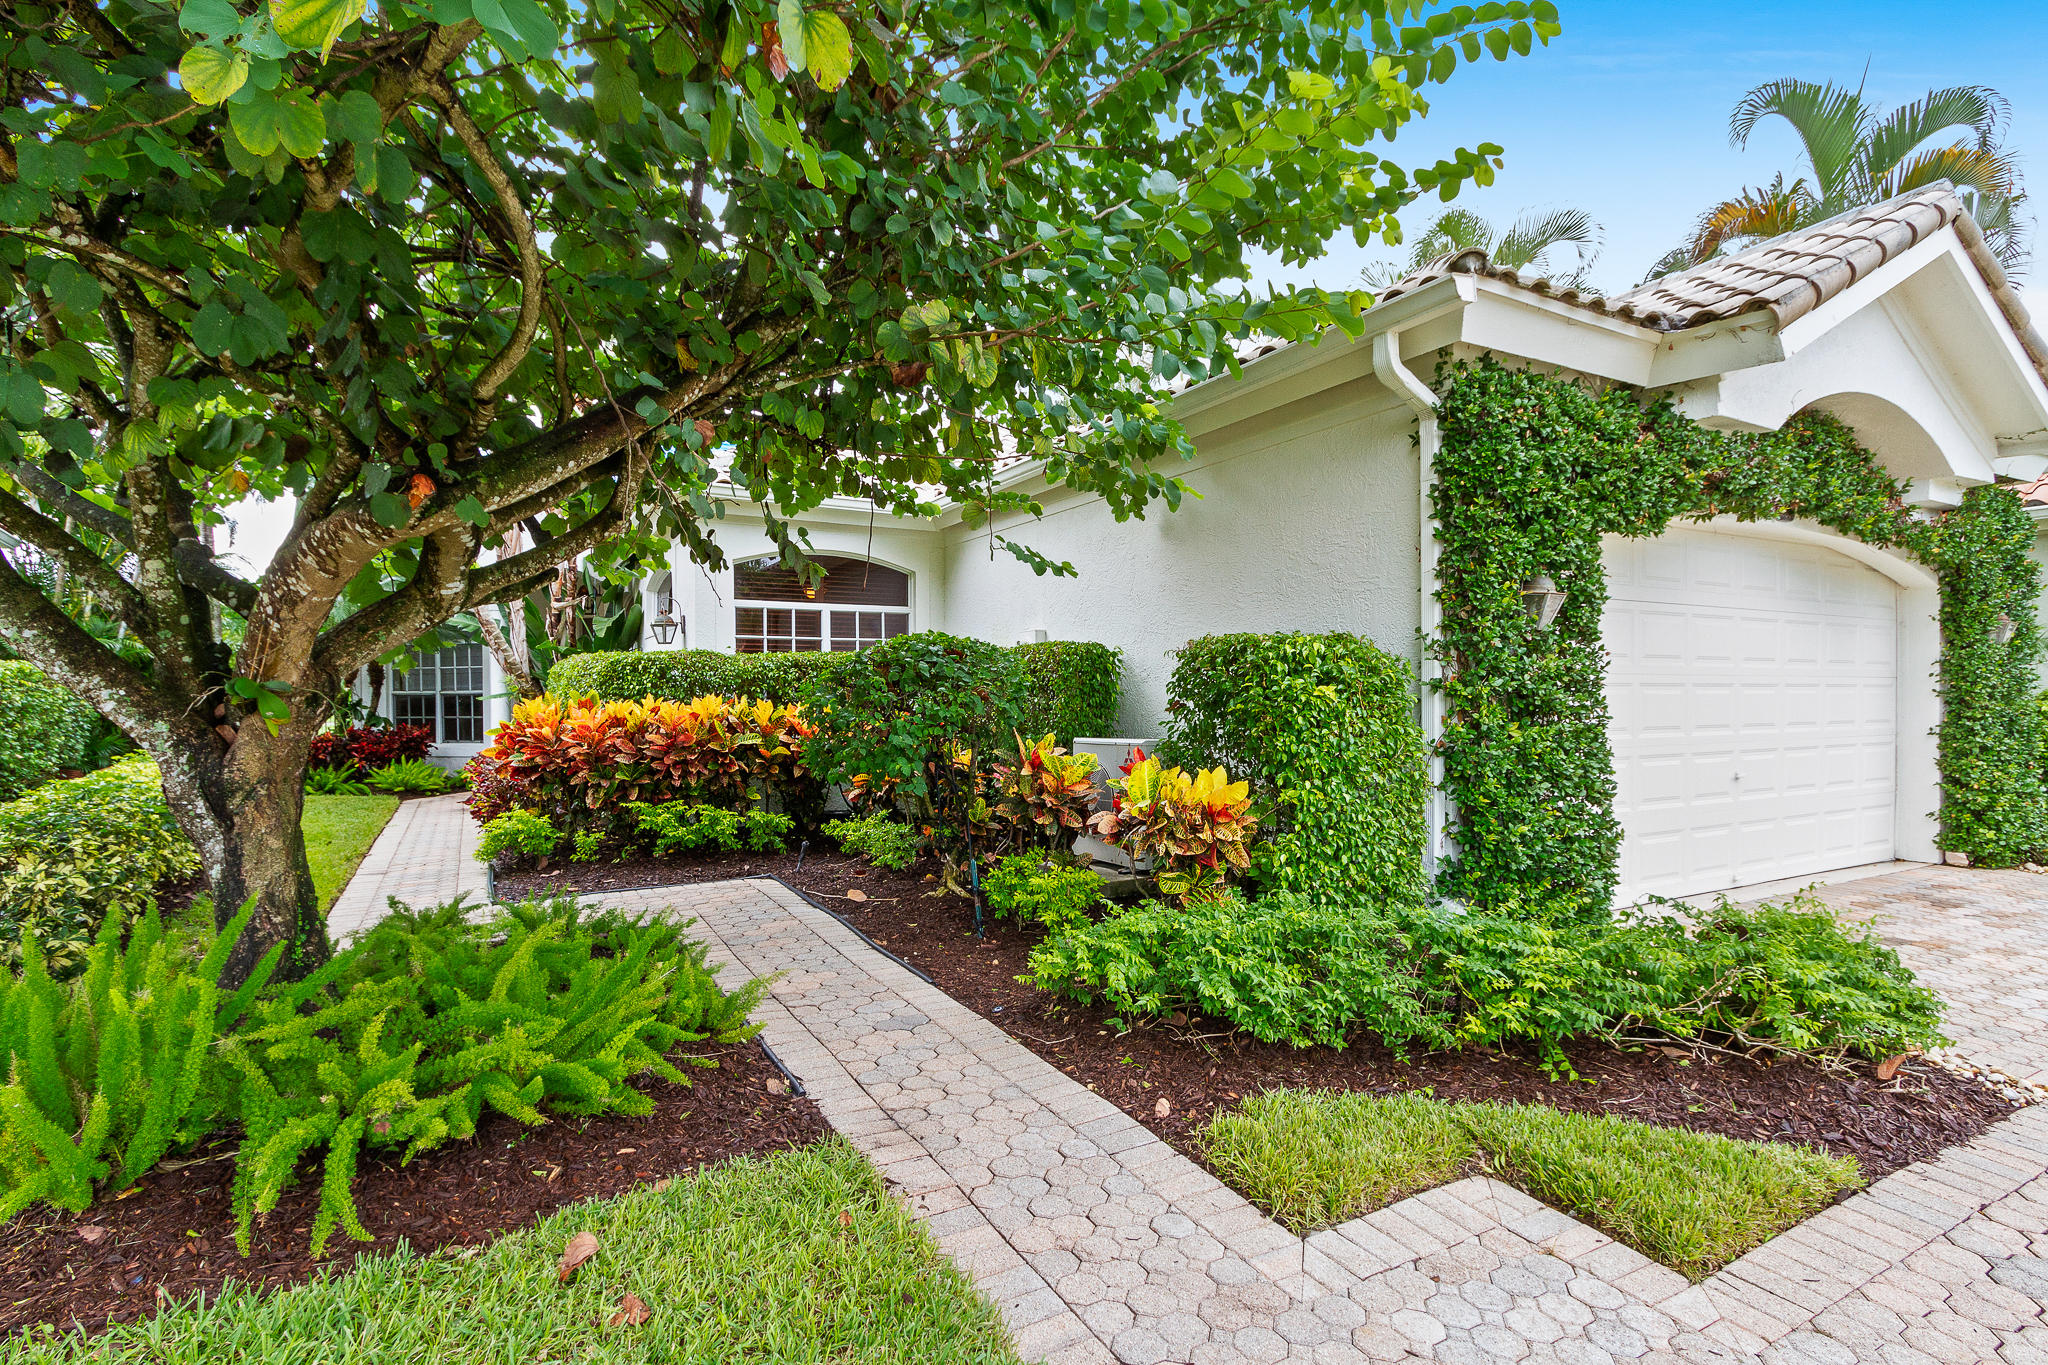 12624 Mallet Circle, Wellington, Florida 33414, 3 Bedrooms Bedrooms, ,2 BathroomsBathrooms,Single Family,For Sale,Palm Beach Polo & Country Club /Chukker Cove,Mallet,RX-10557527